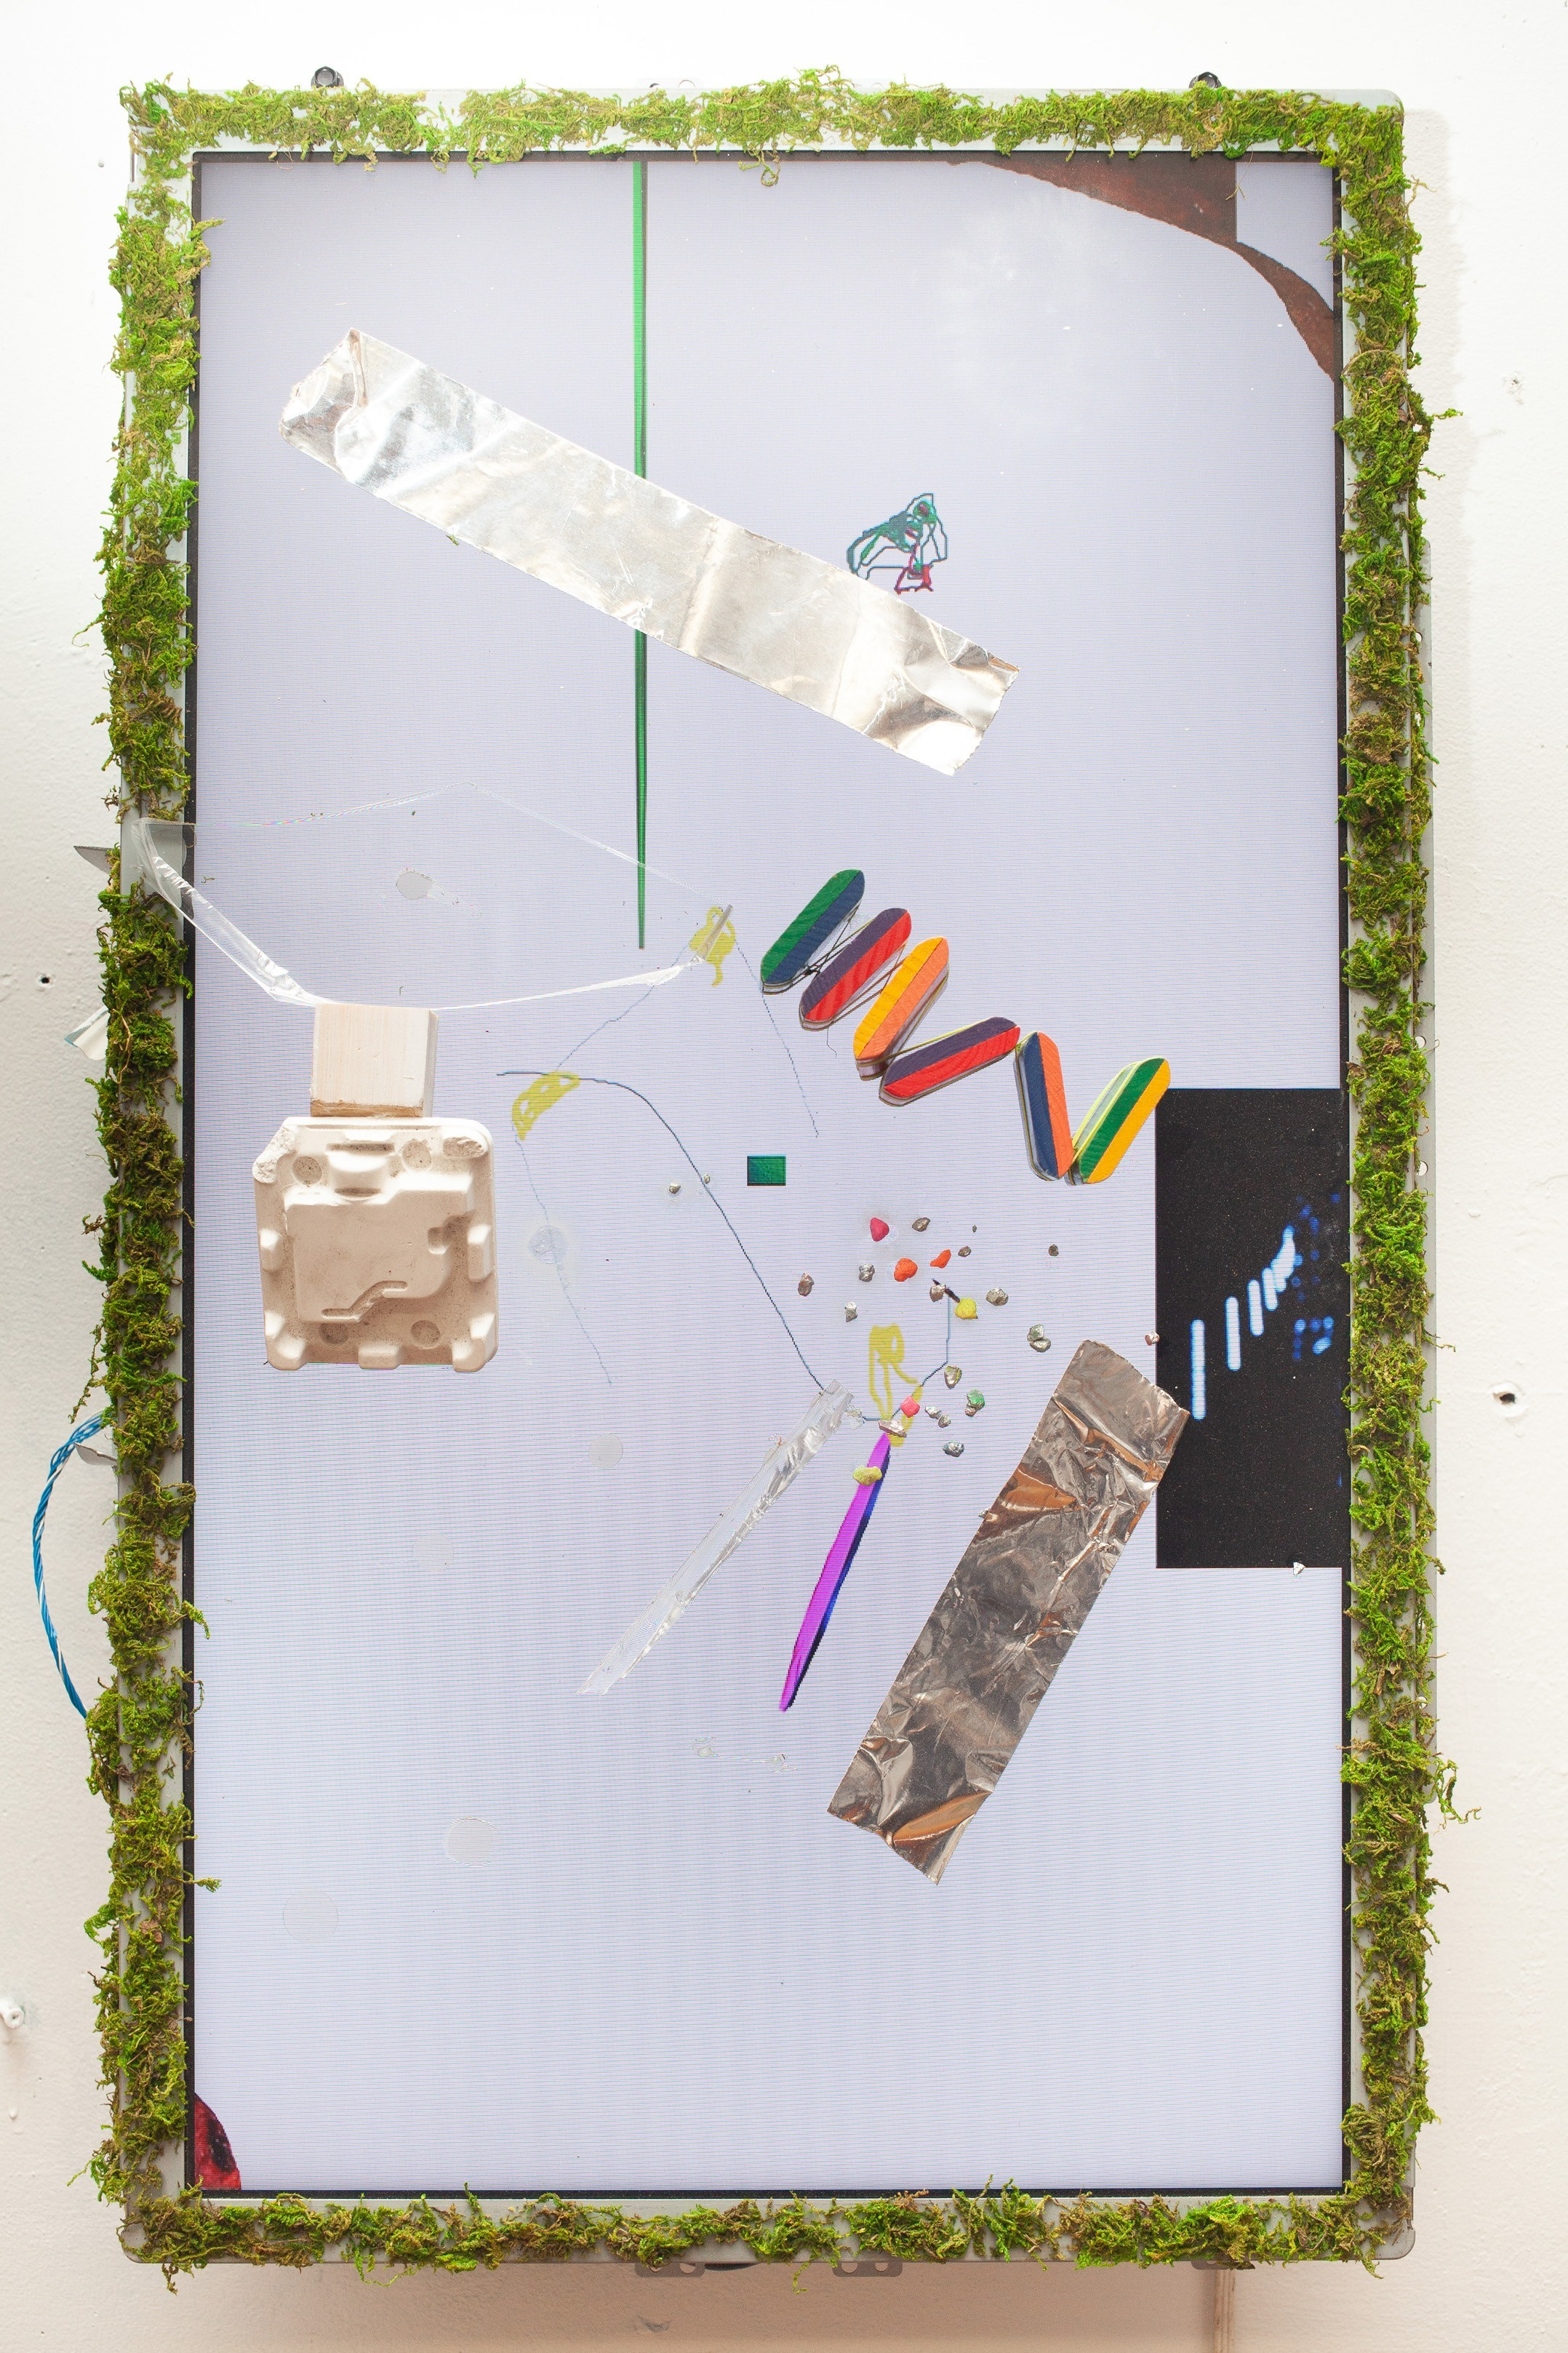 Videopainting 4 , 2019, LCD monitor with found objects, 18 x 30 IN.